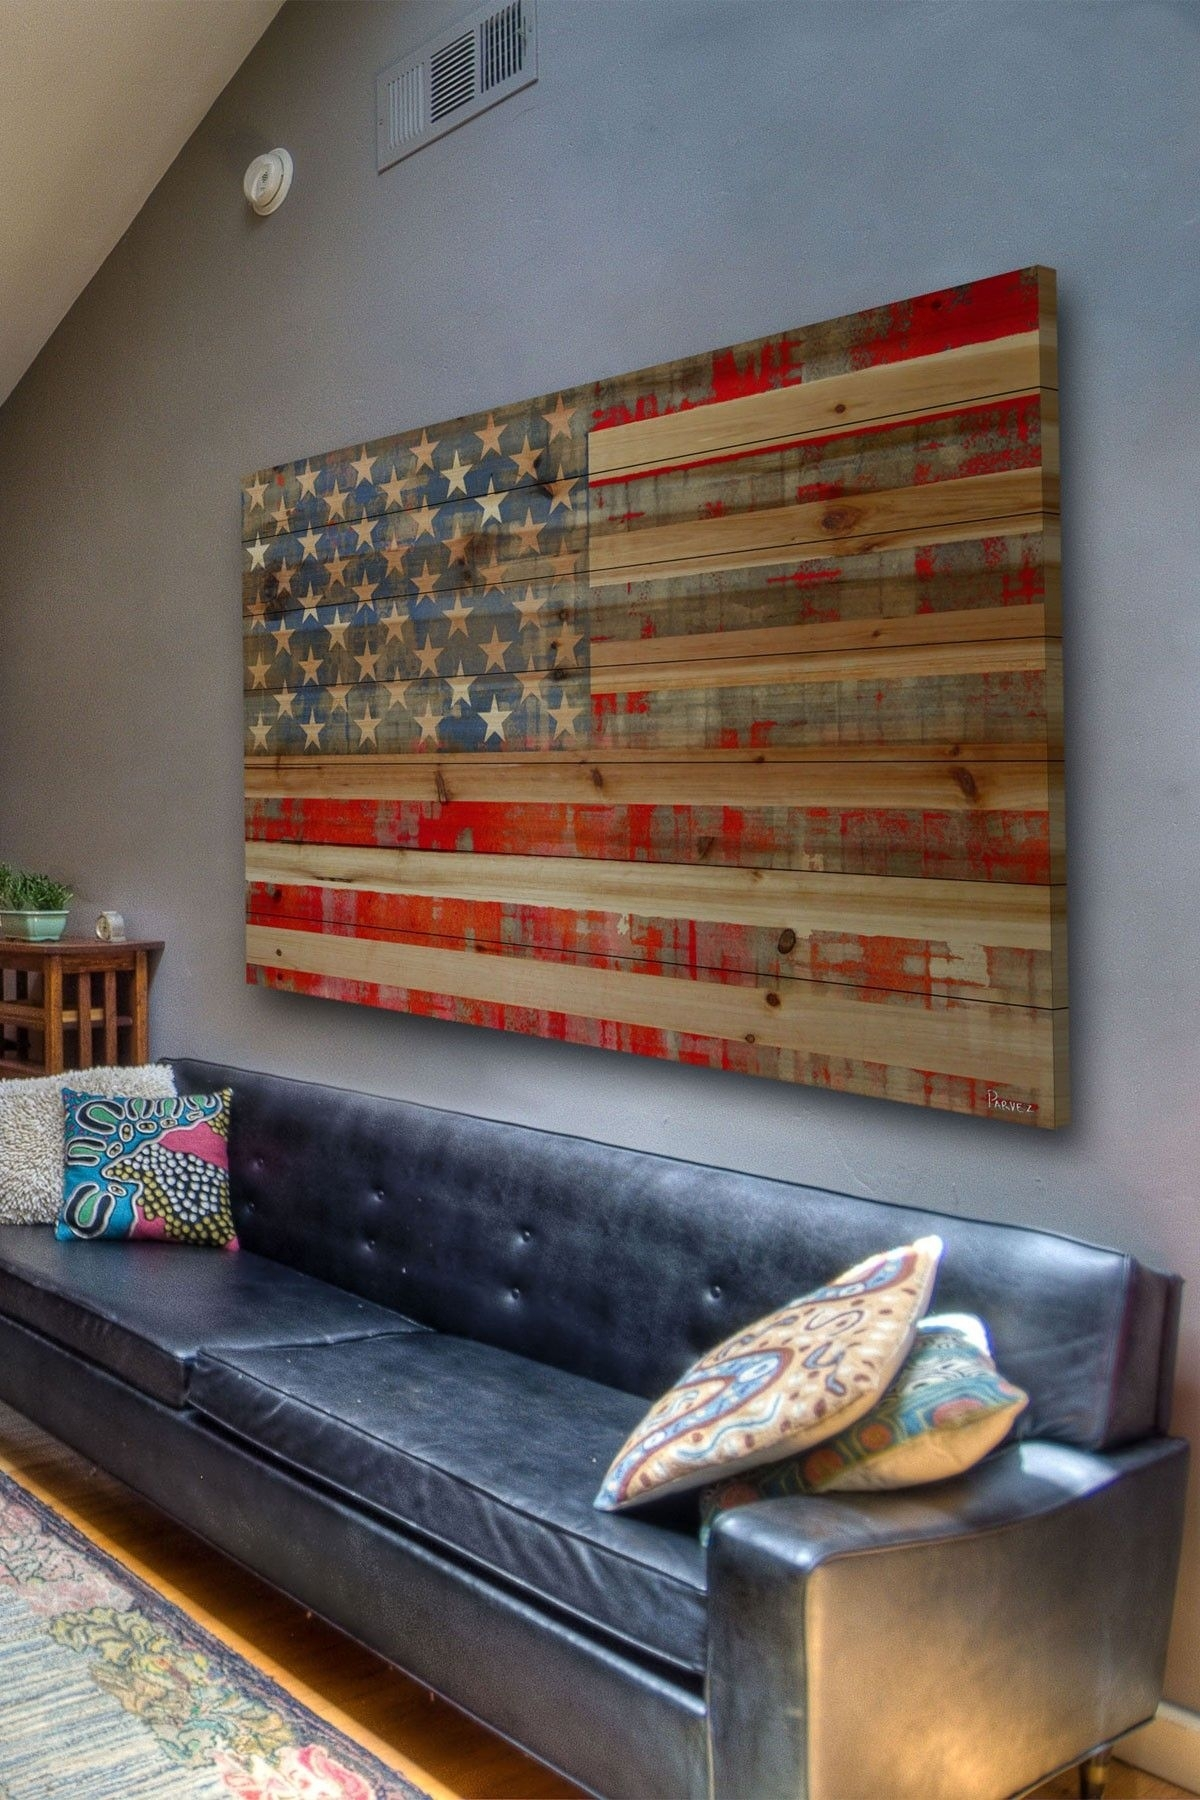 Rustic American Flag Decor Maybe For A Basement Or Lake House Regarding Latest American Flag Wall Art (View 9 of 15)